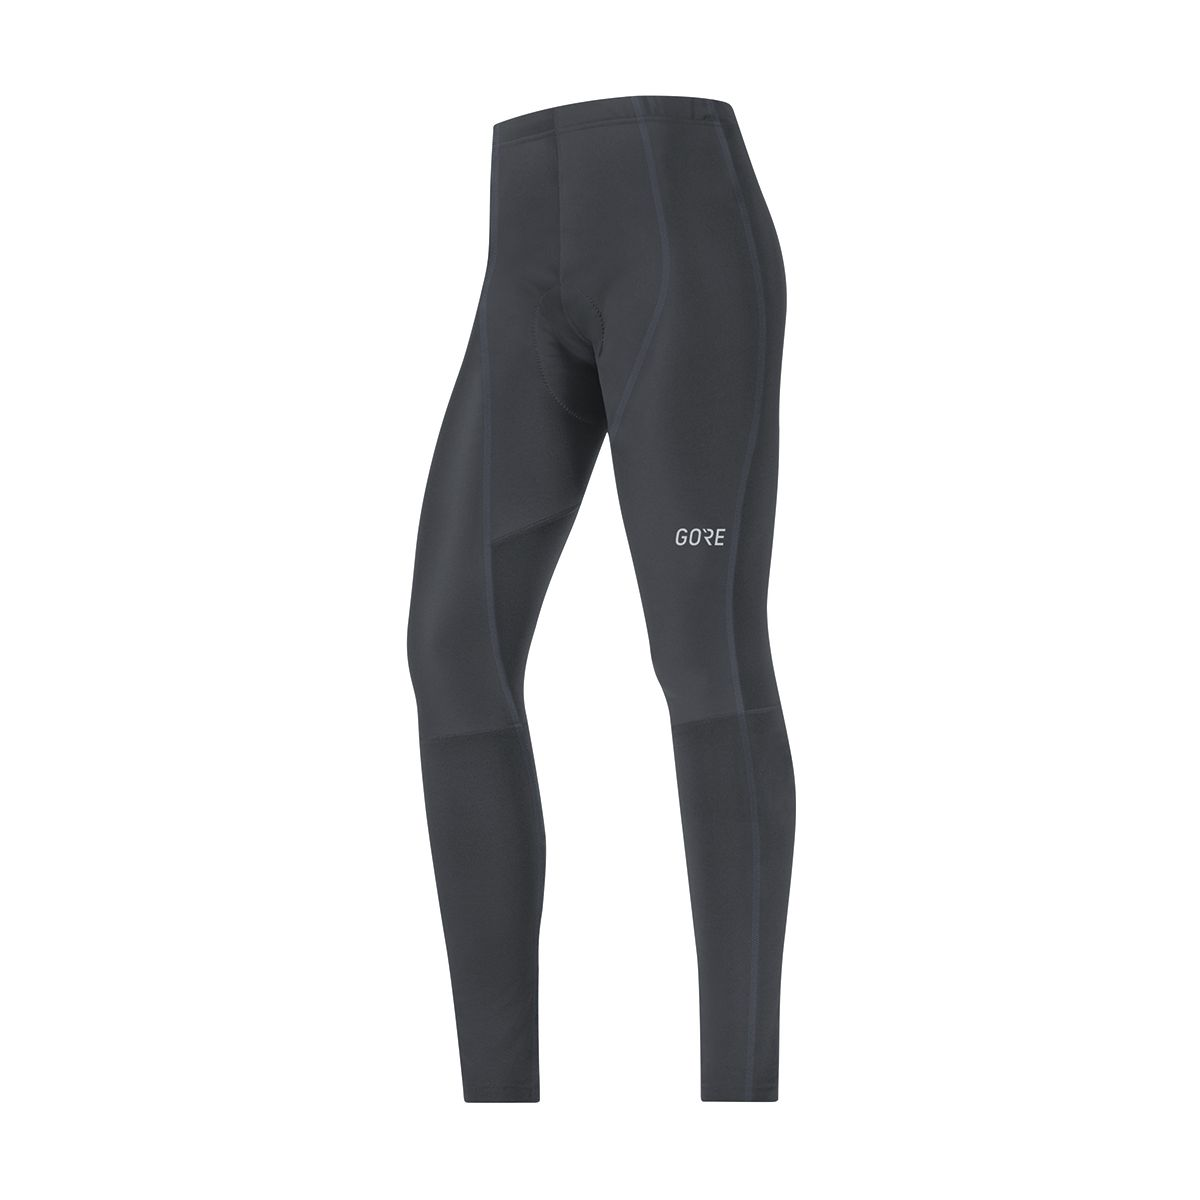 C3 WOMEN GORE WINDSTOPPER TIGHTS+ Damen Thermo Tights